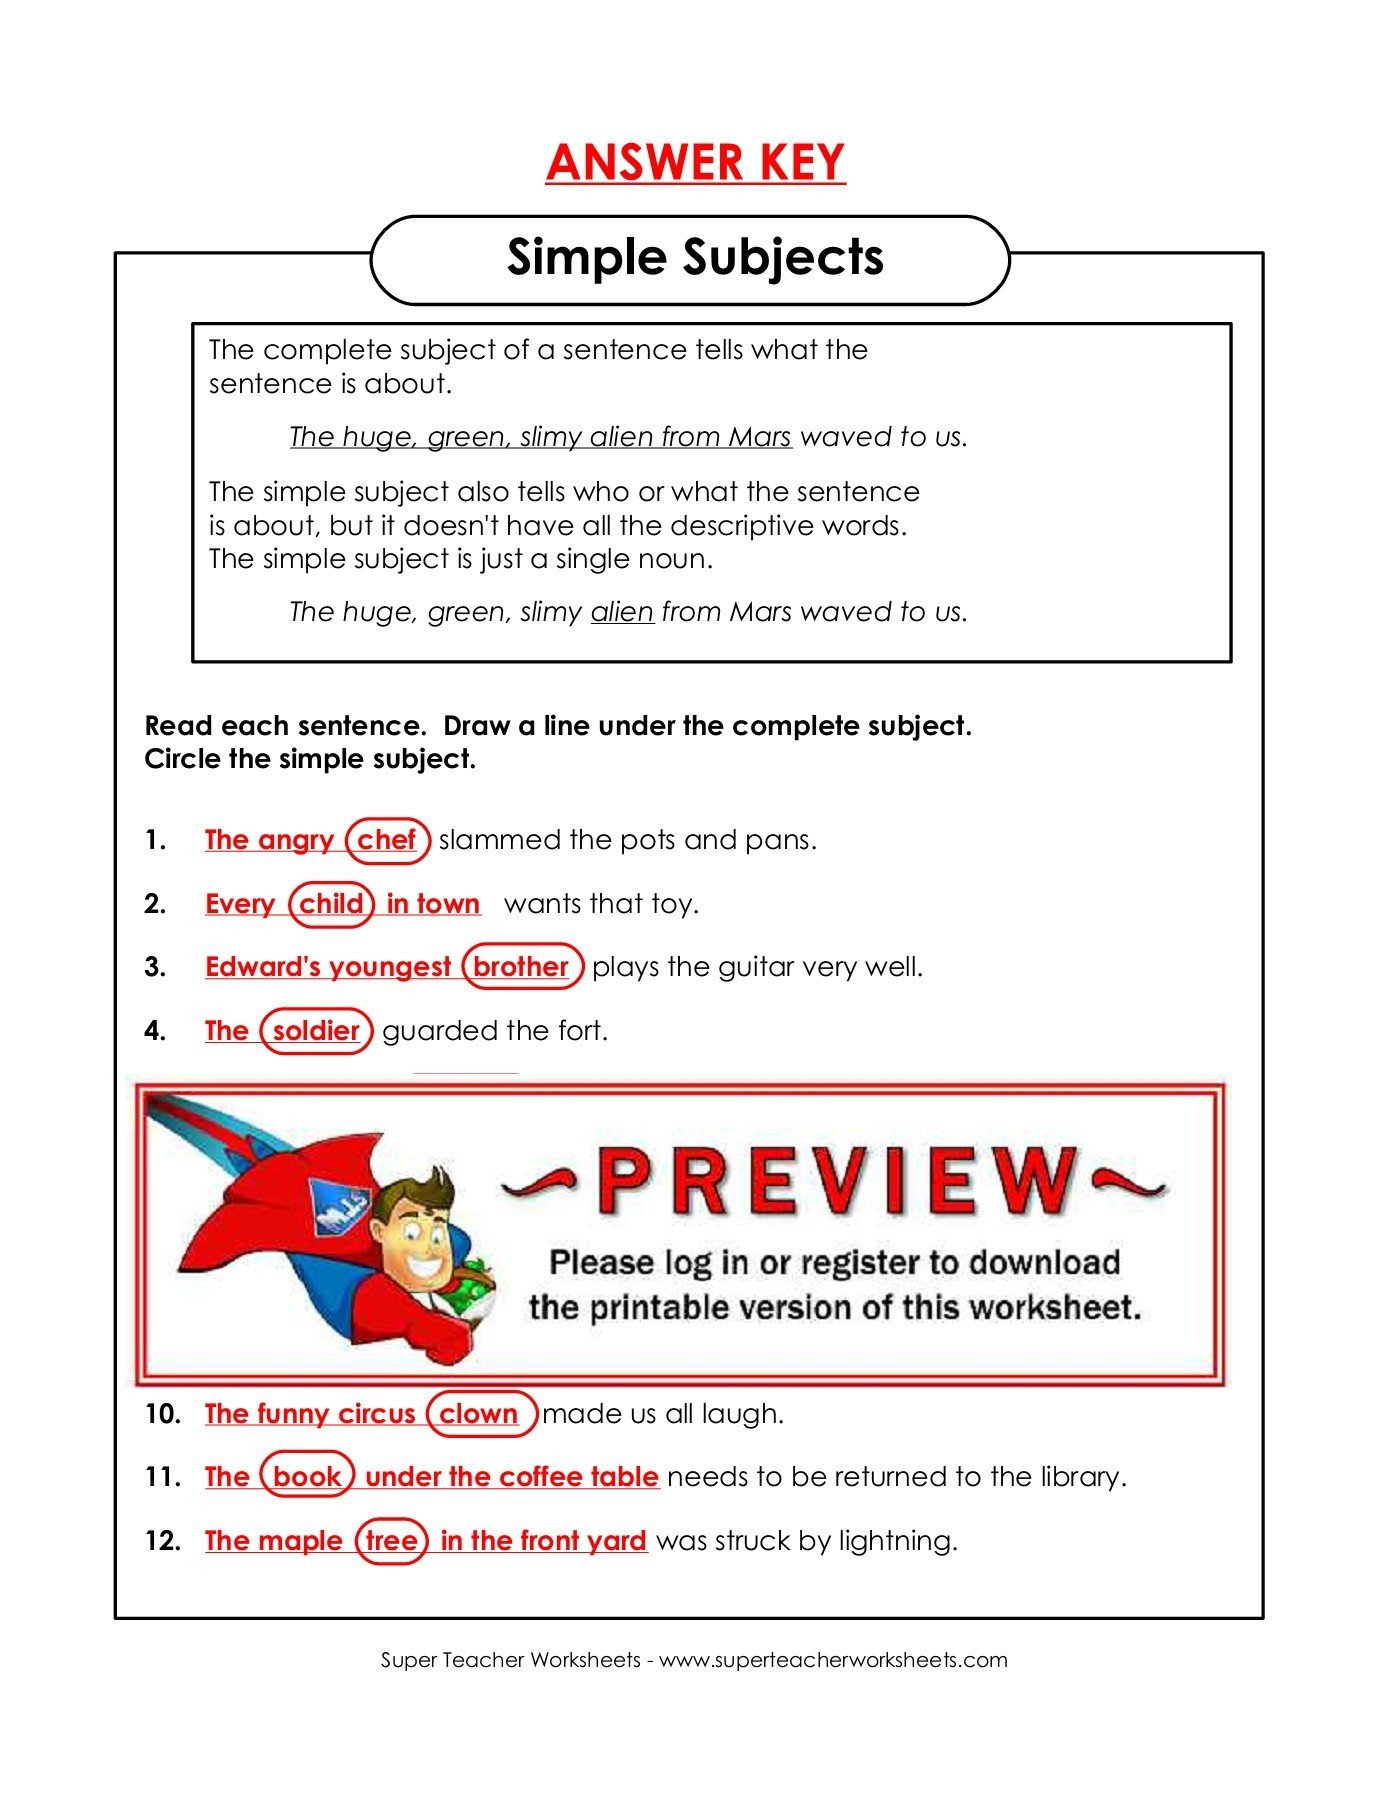 Super Teacher Worksheet Answers Simple Subjects Super Teacher Worksheets